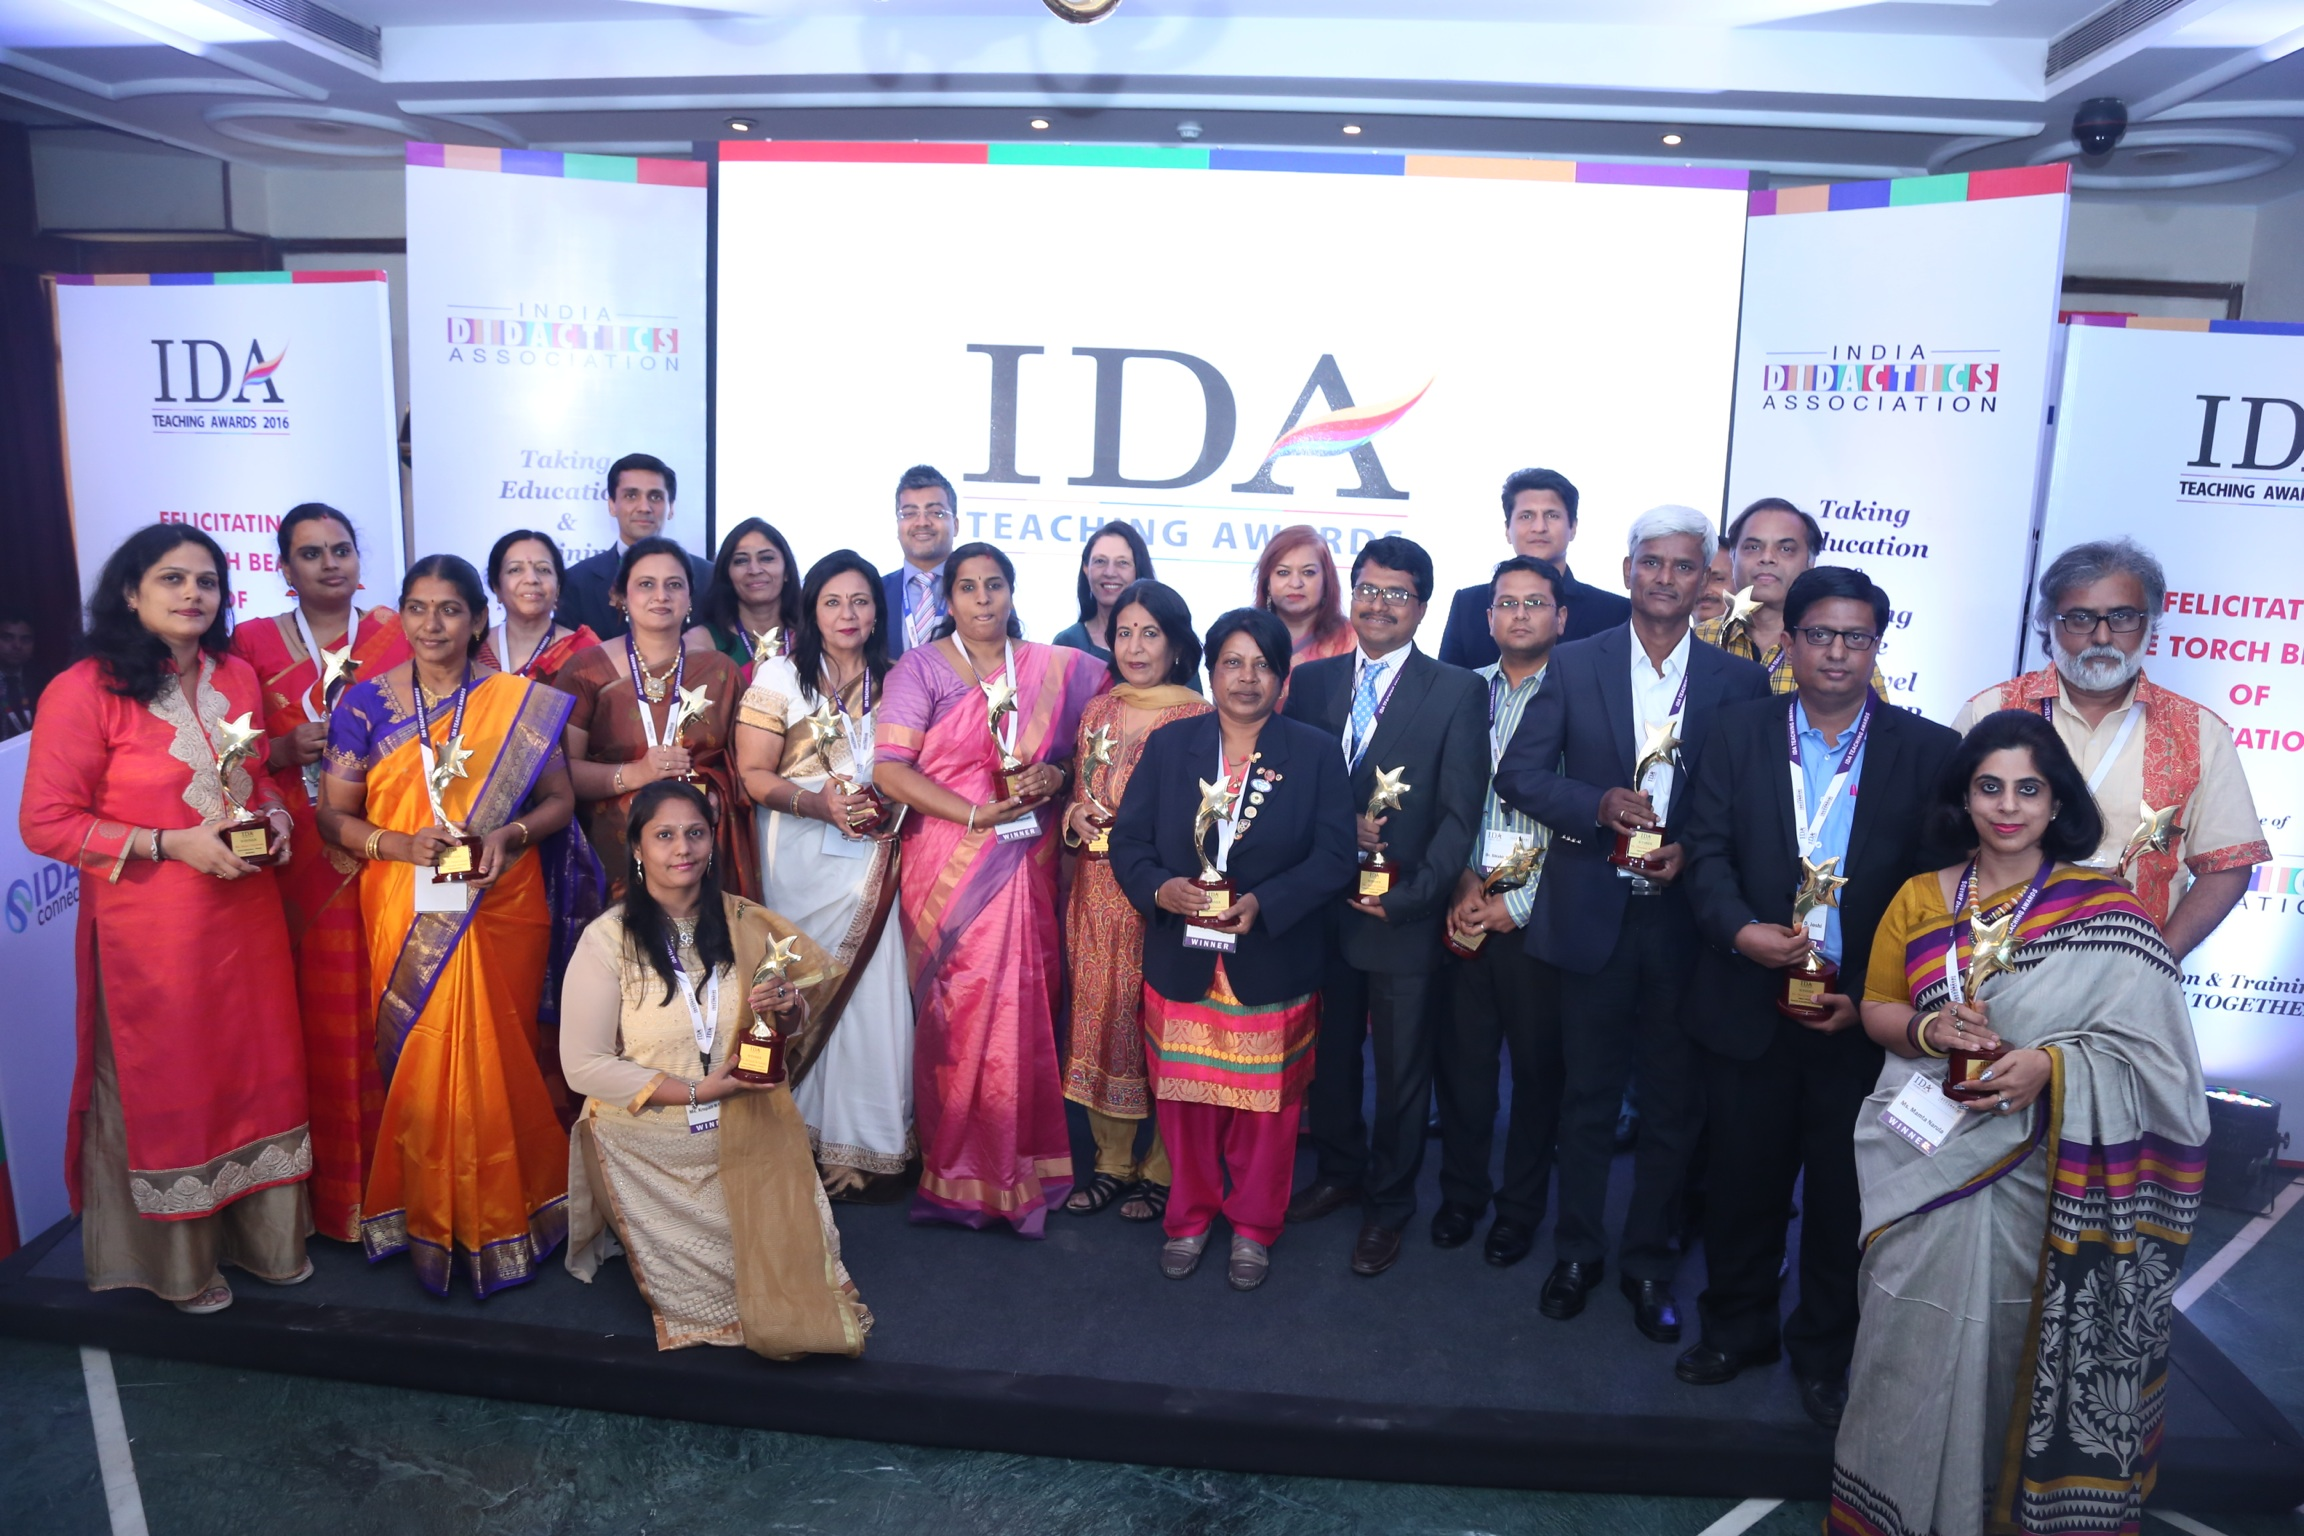 IDA TEACHING AWARDS-  2016